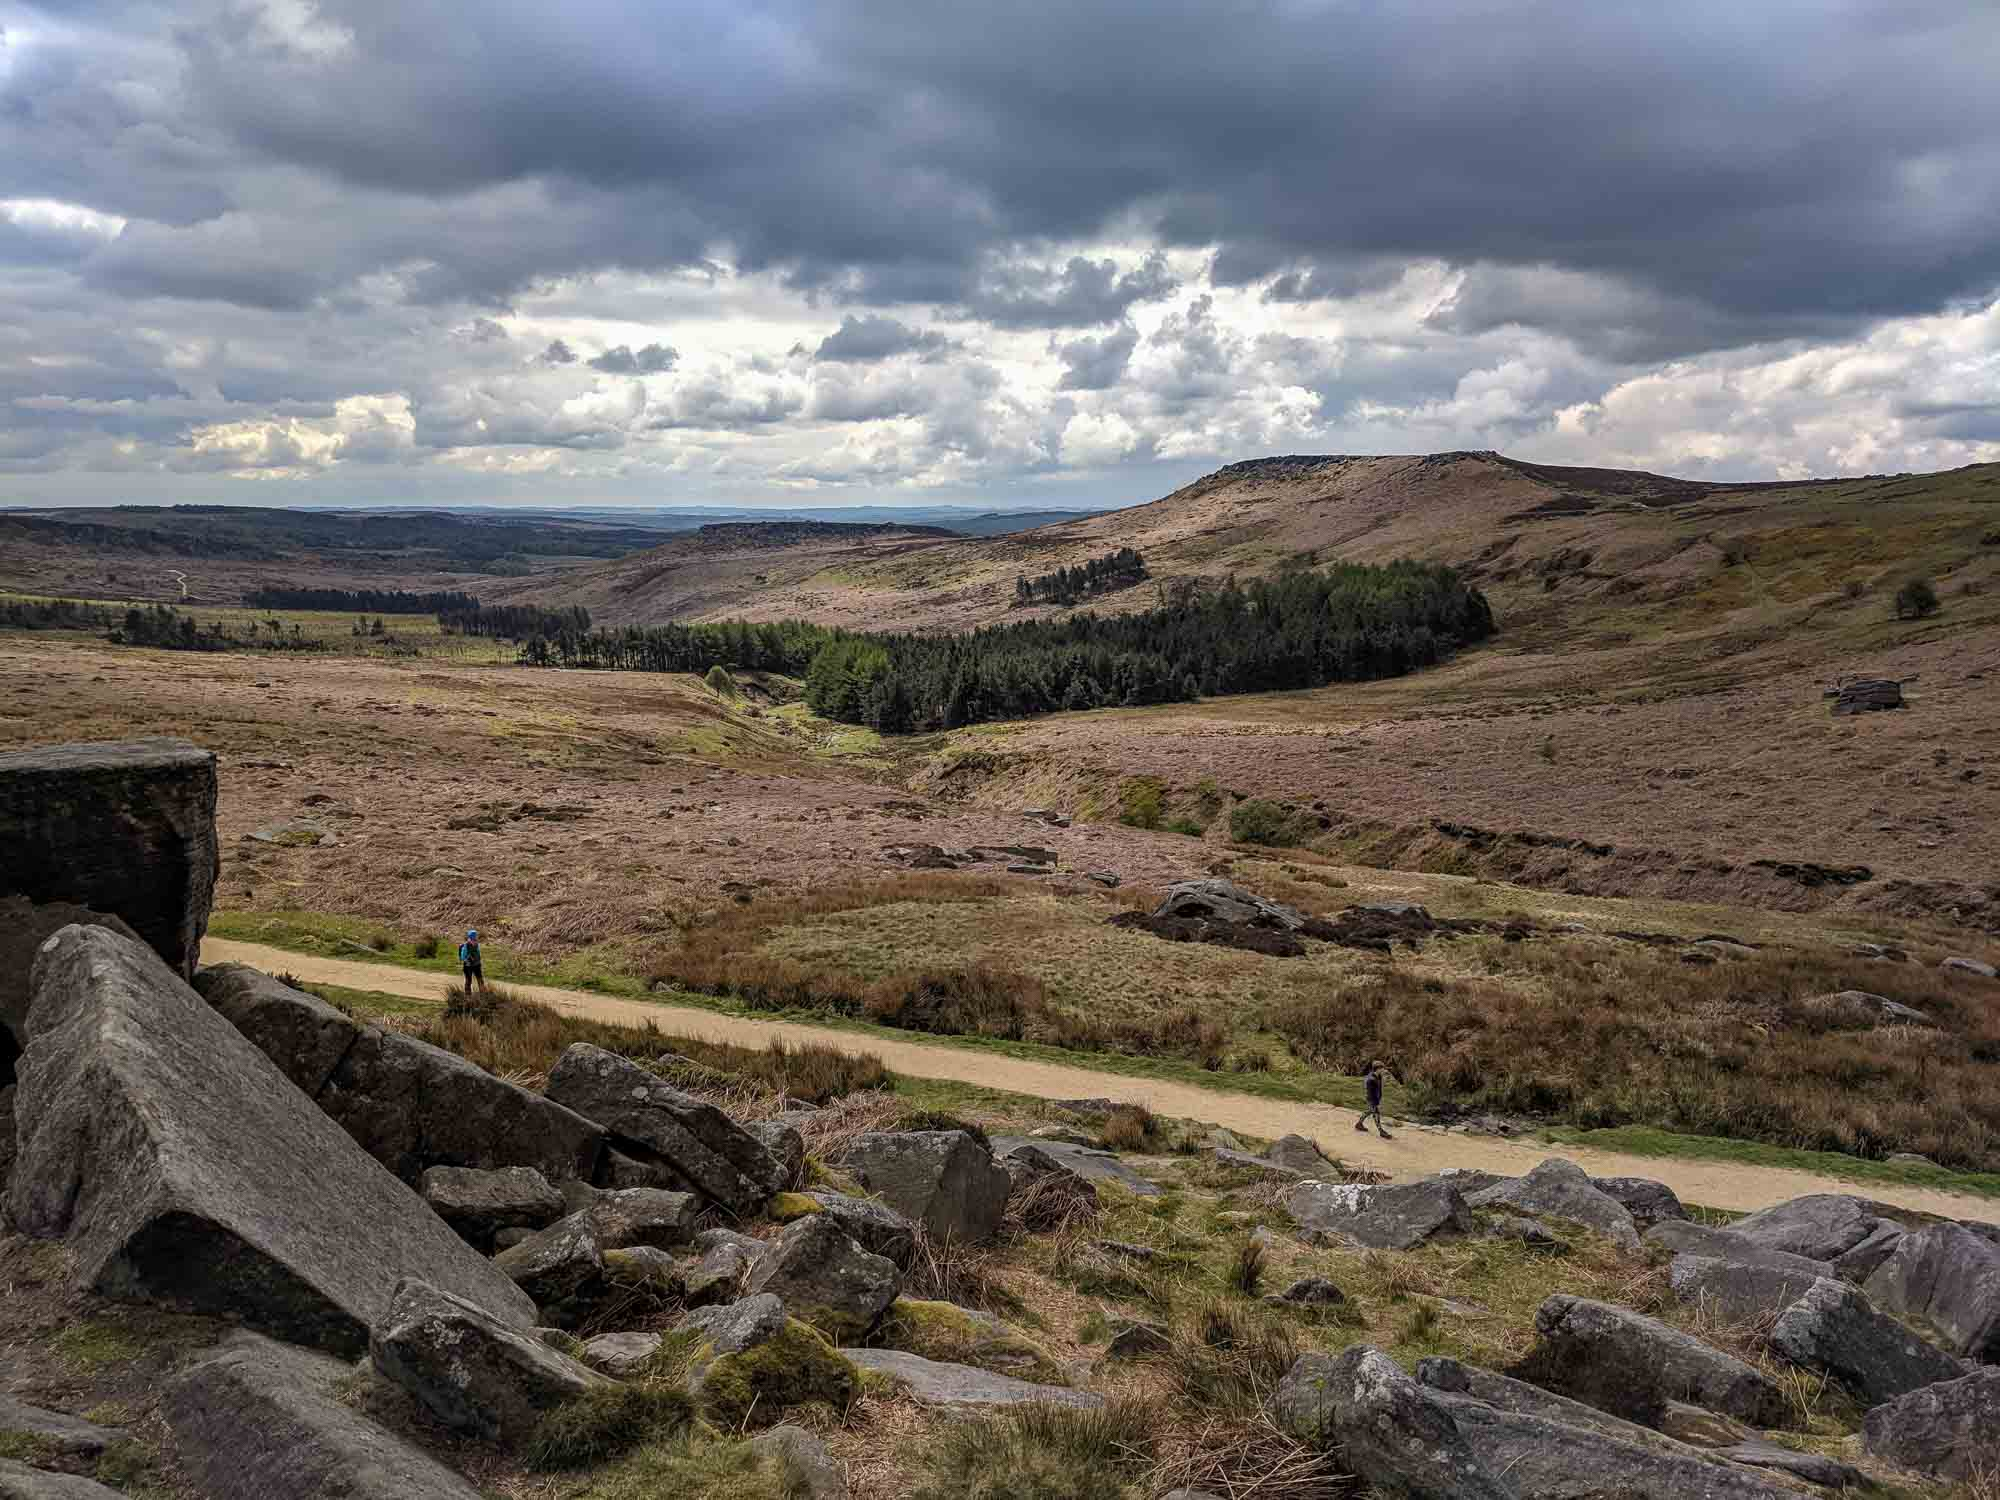 The scenery from Burbage Rocks